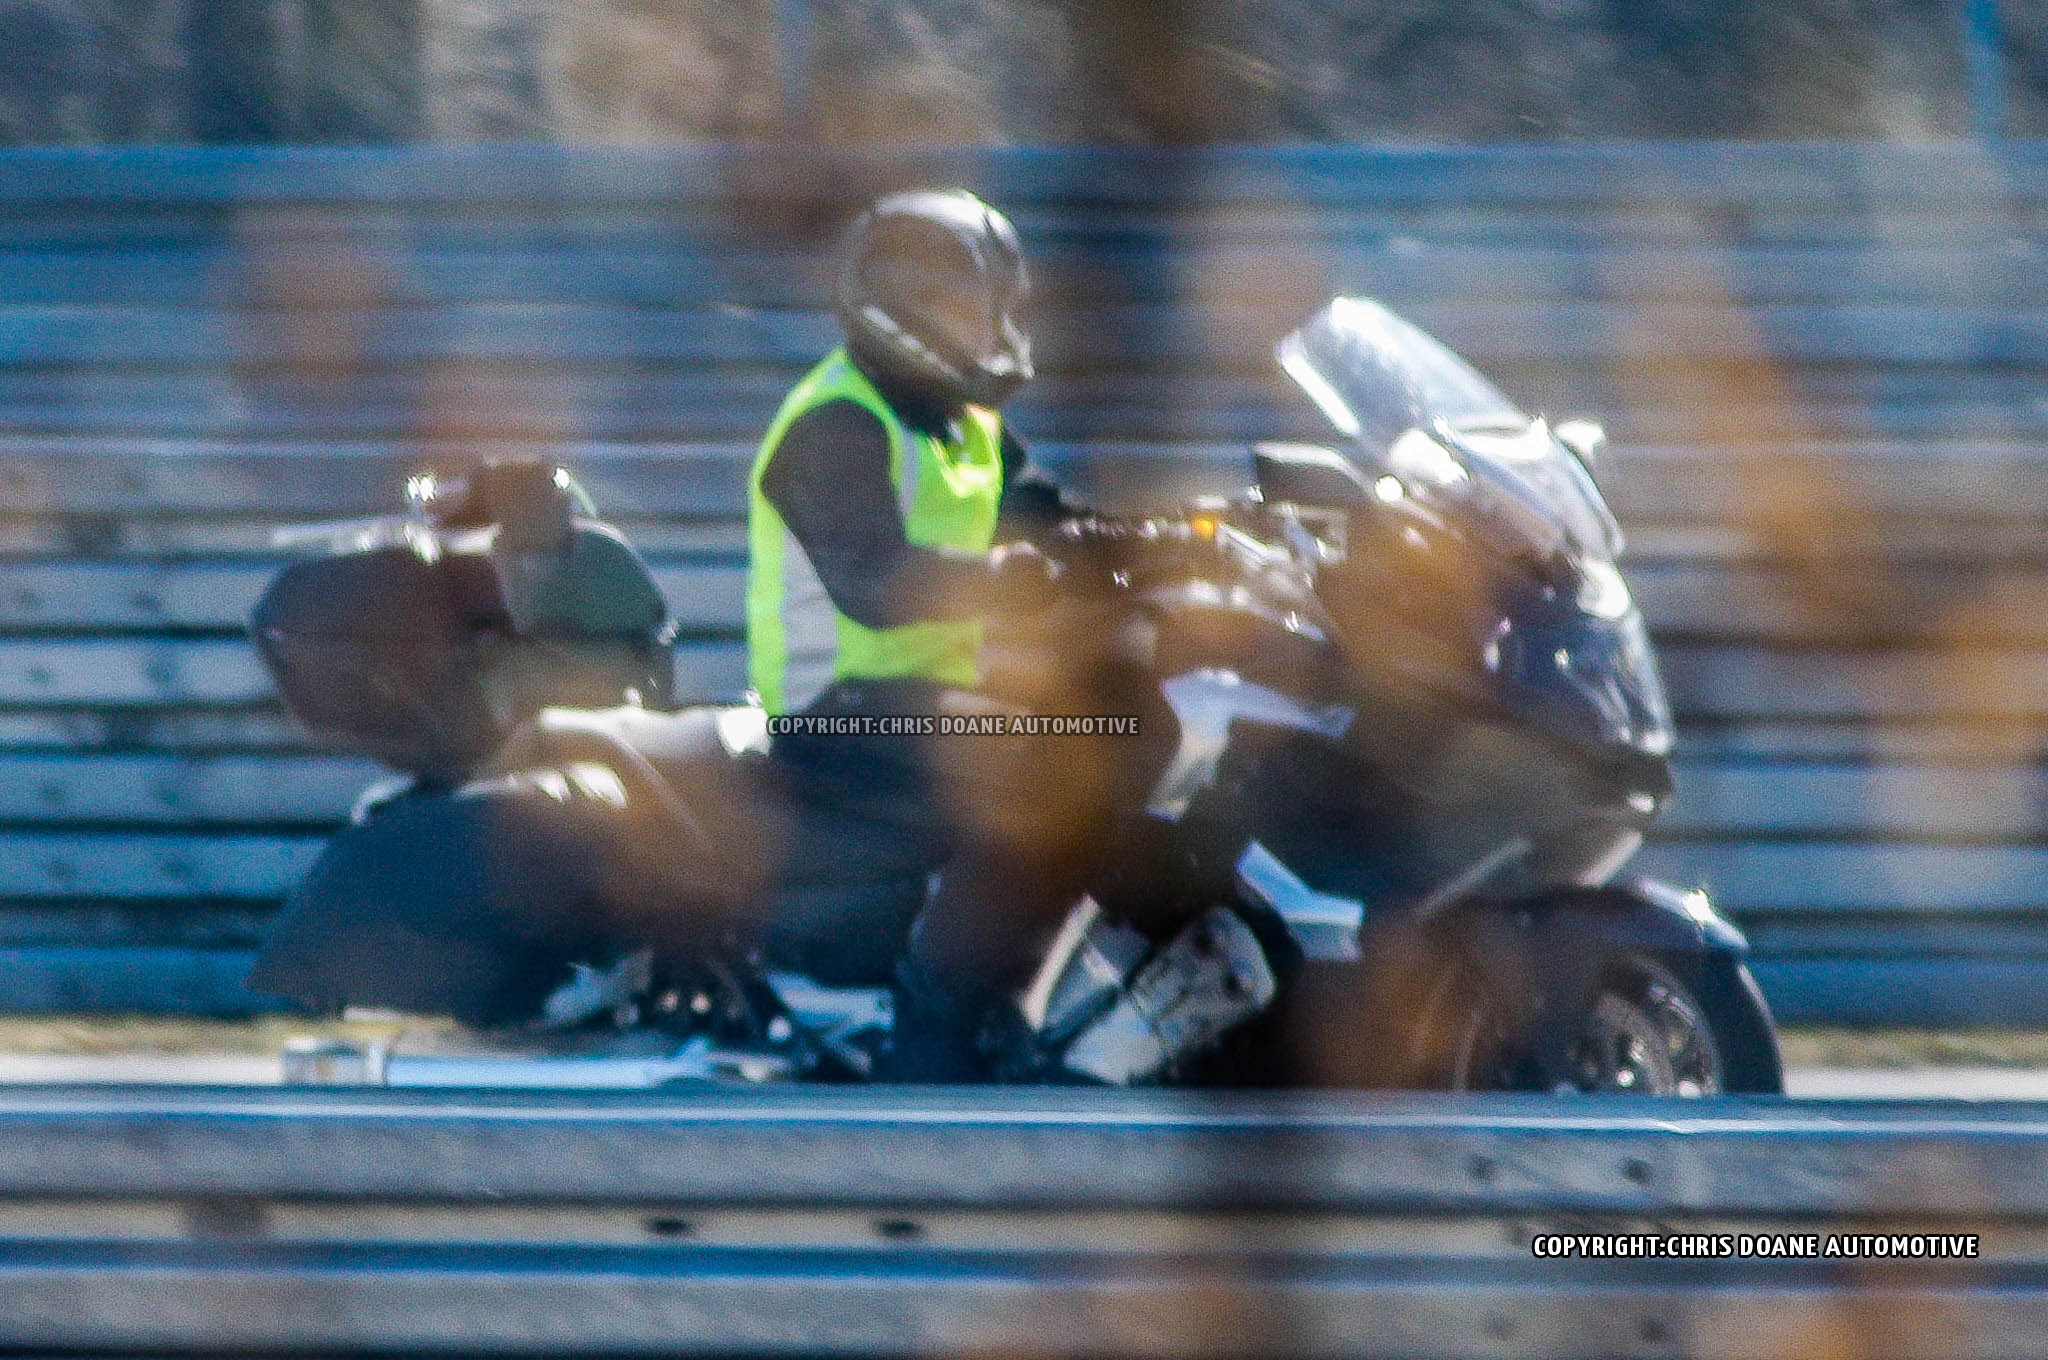 BMW K1600 bagger and liquid-cooled R1200R spied